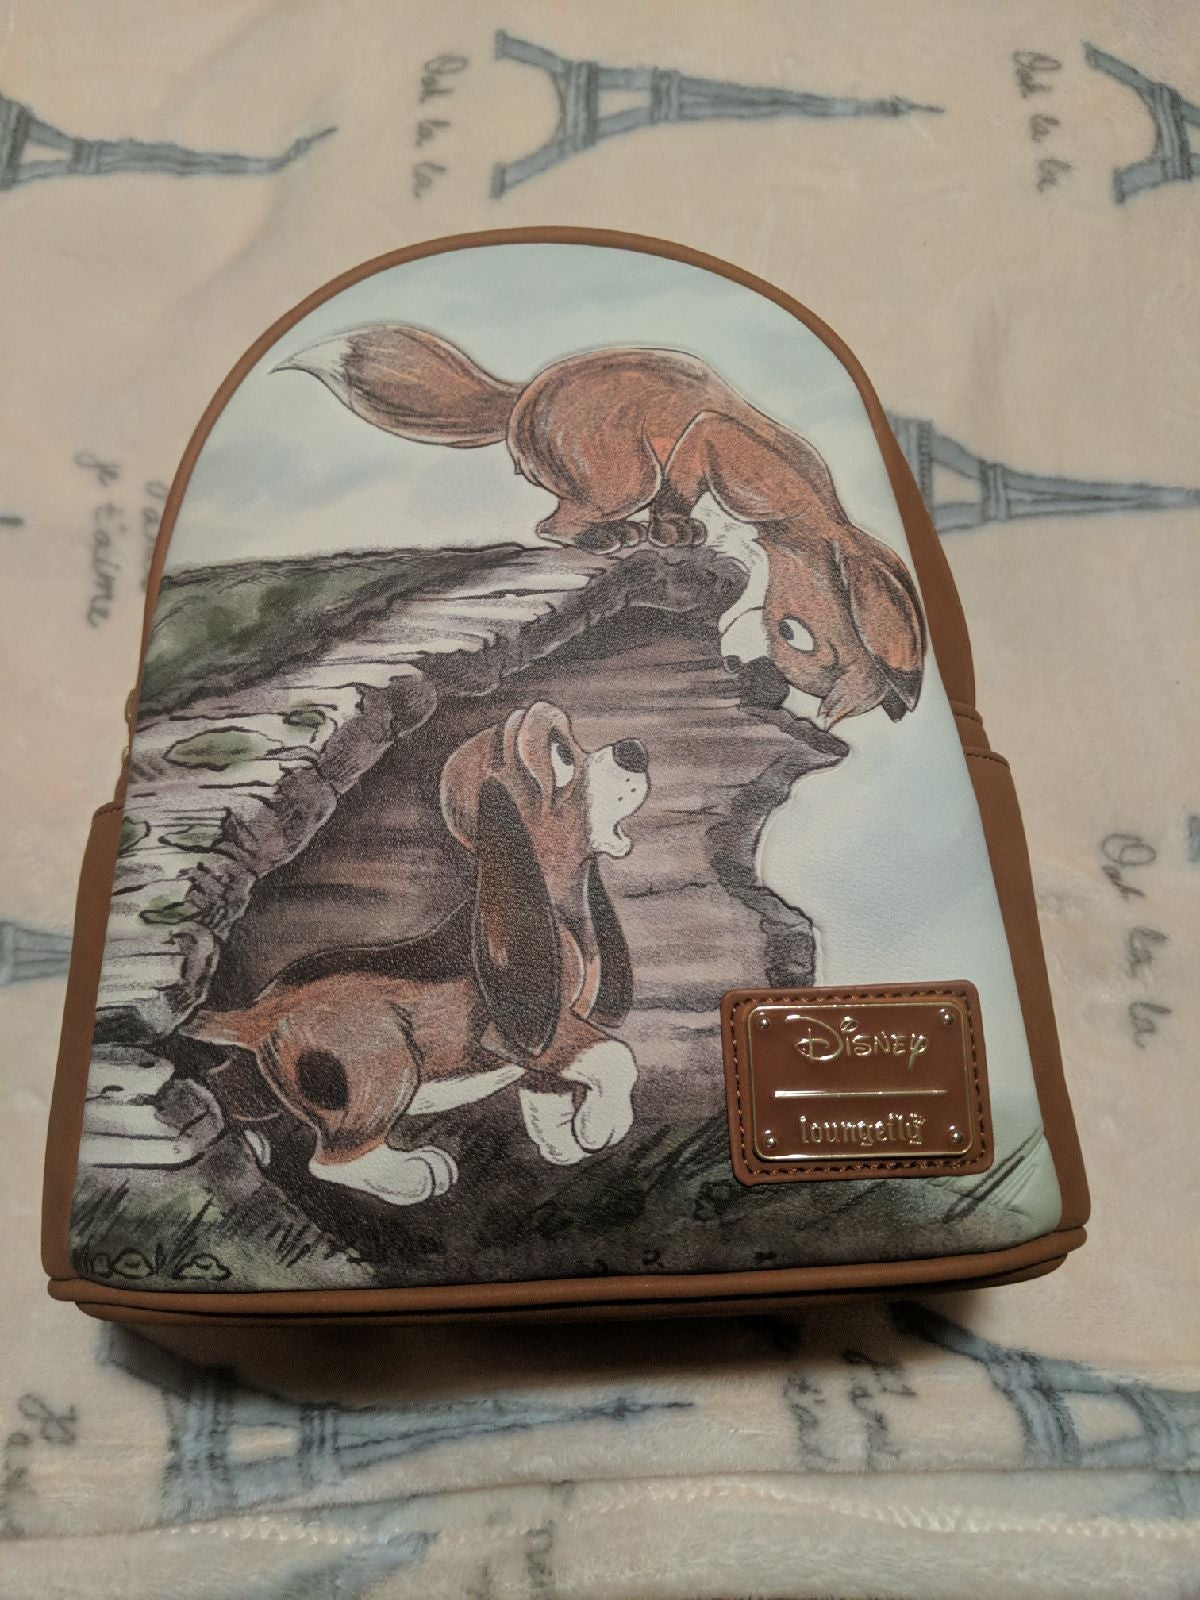 Loungefly Fox and the Hound Backpack